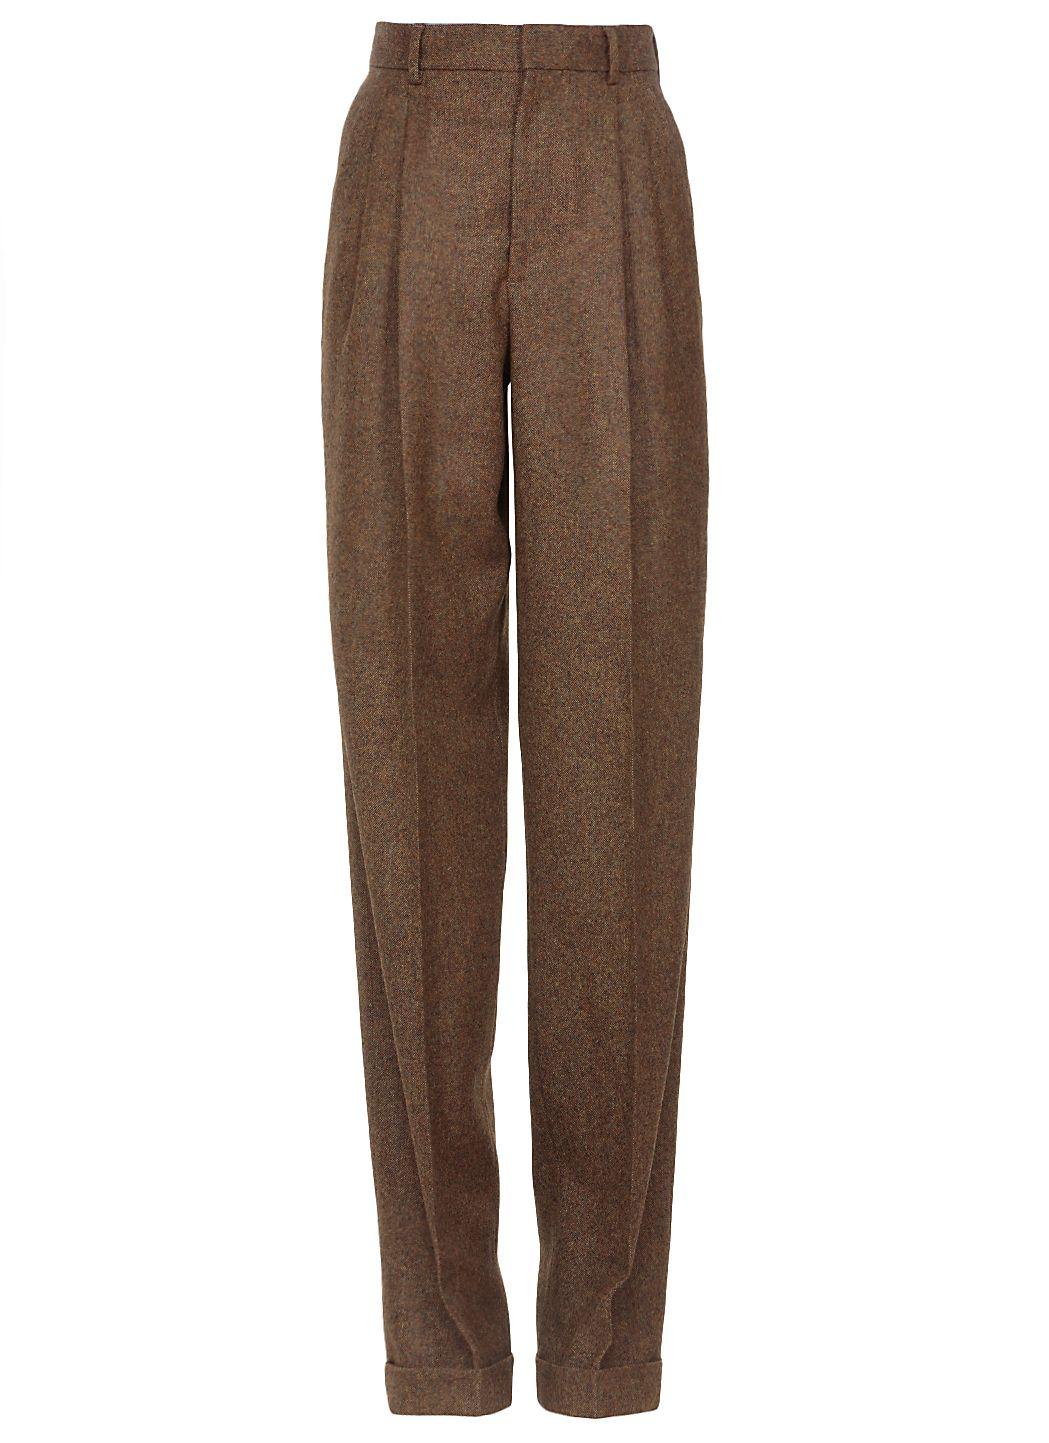 Wool Jazz Pants